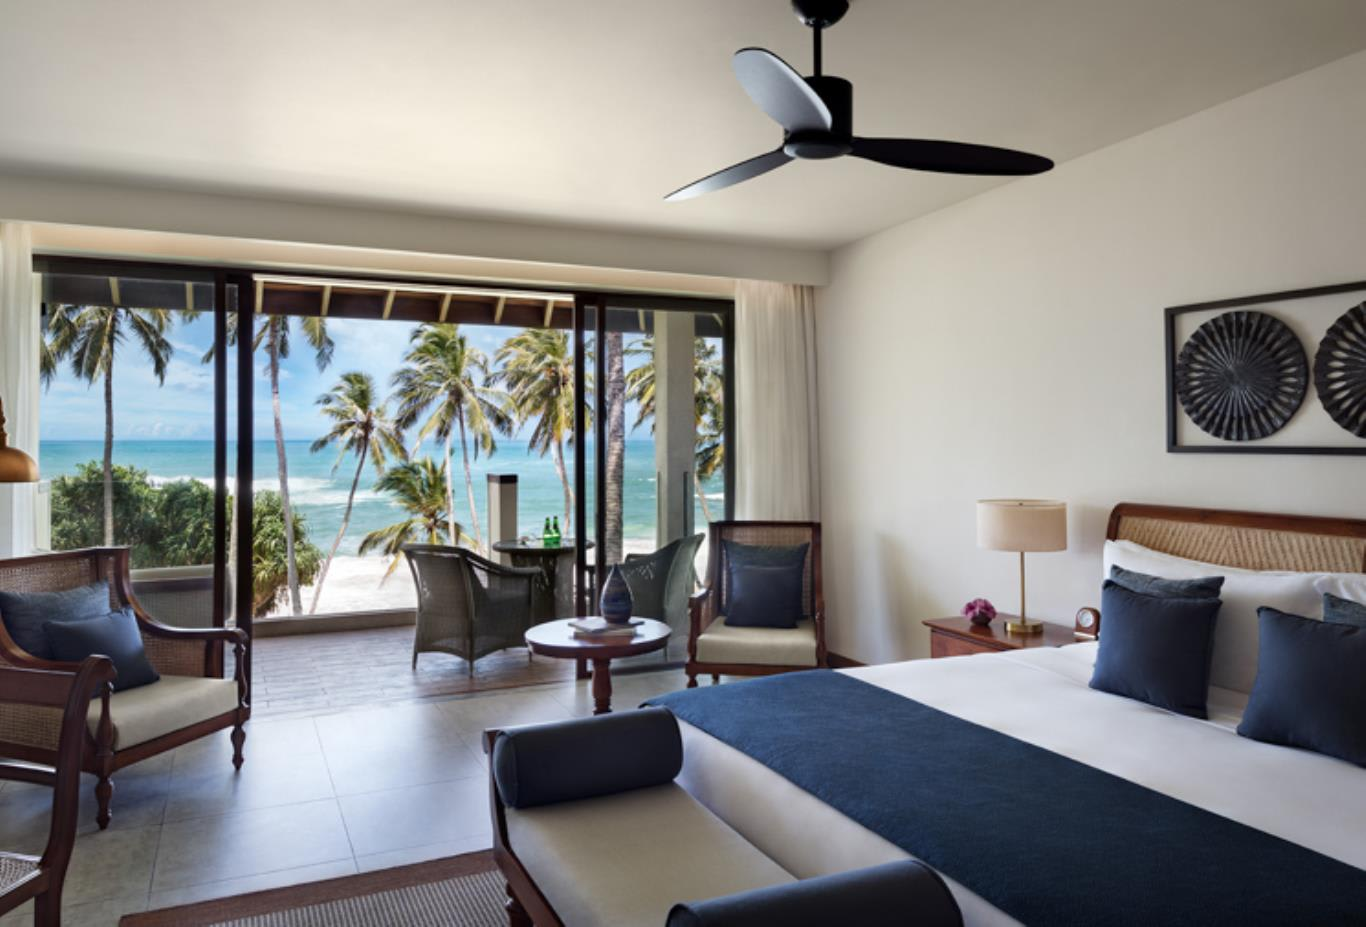 Premier Ocean View bedroom